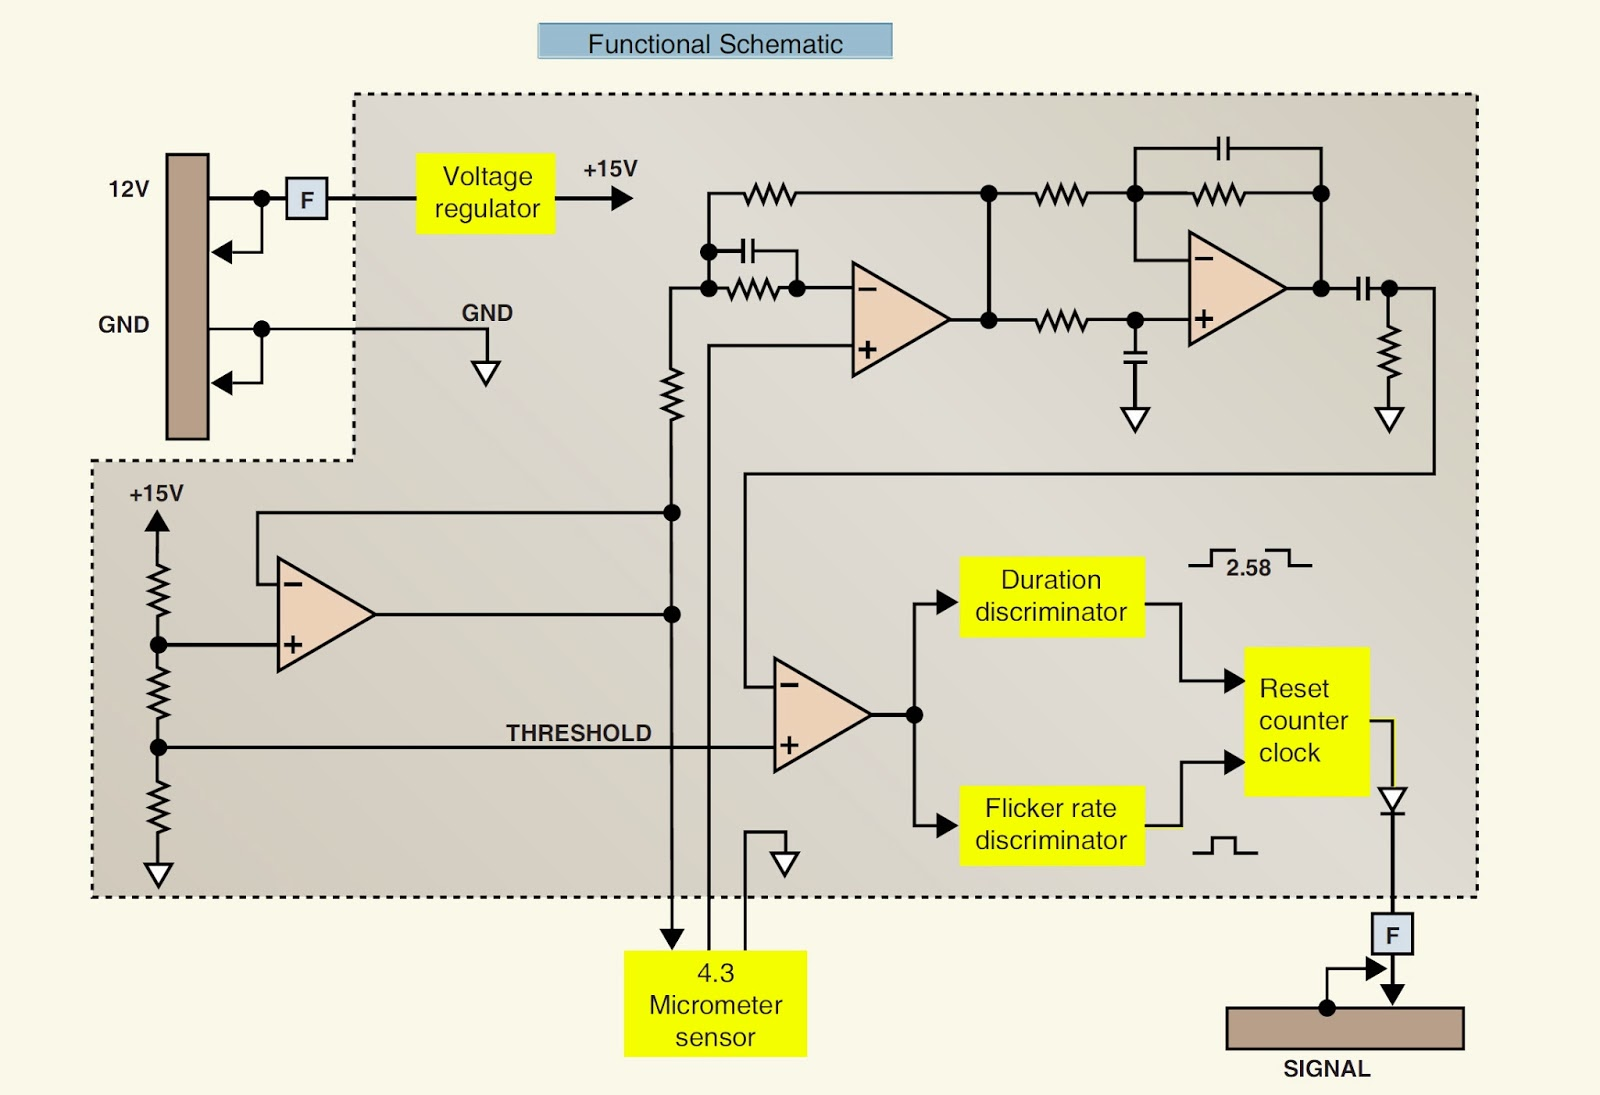 hight resolution of engine fire detection systems